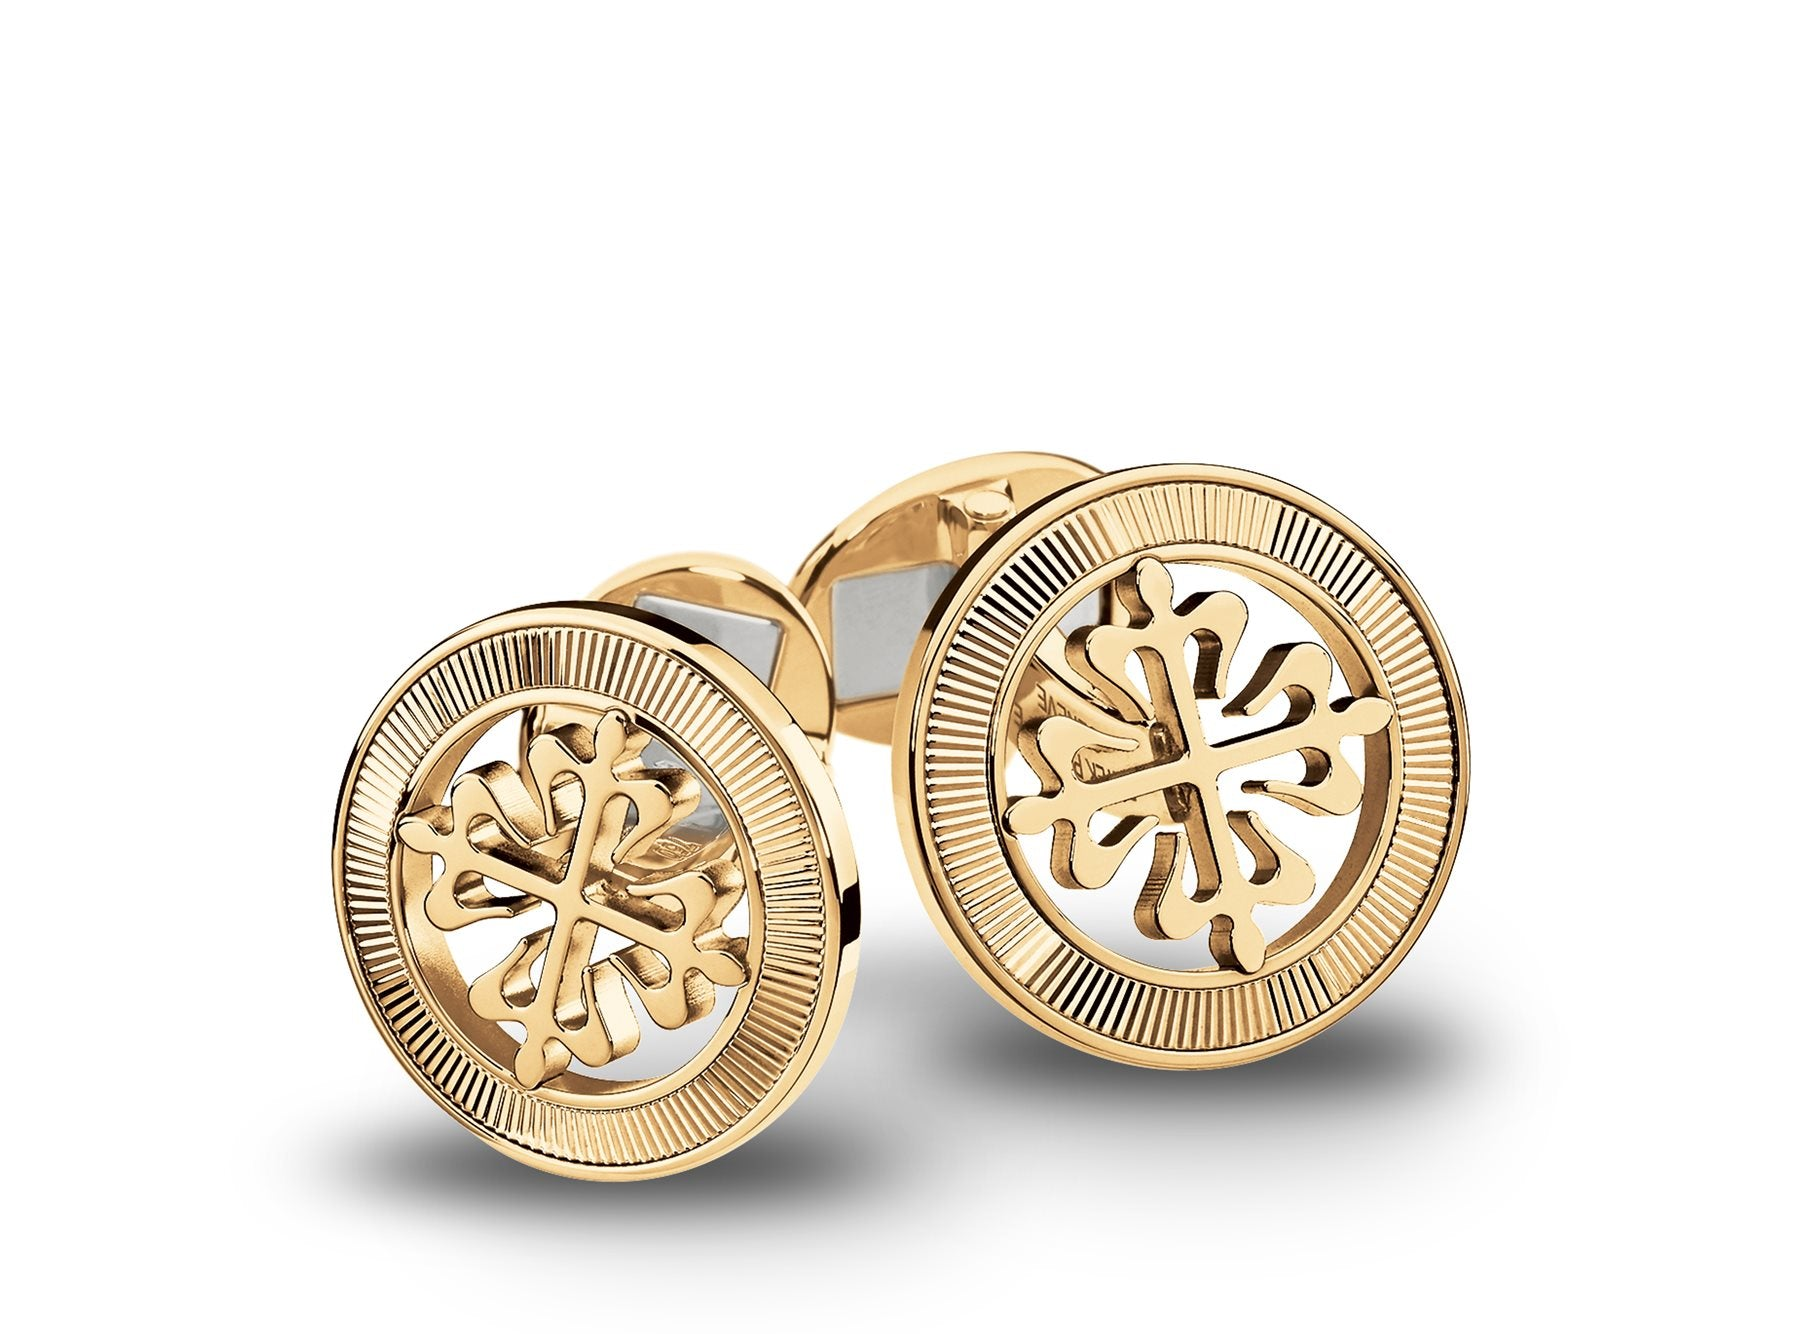 Gold Calatrava Cross Cuff Links Cross Decoration